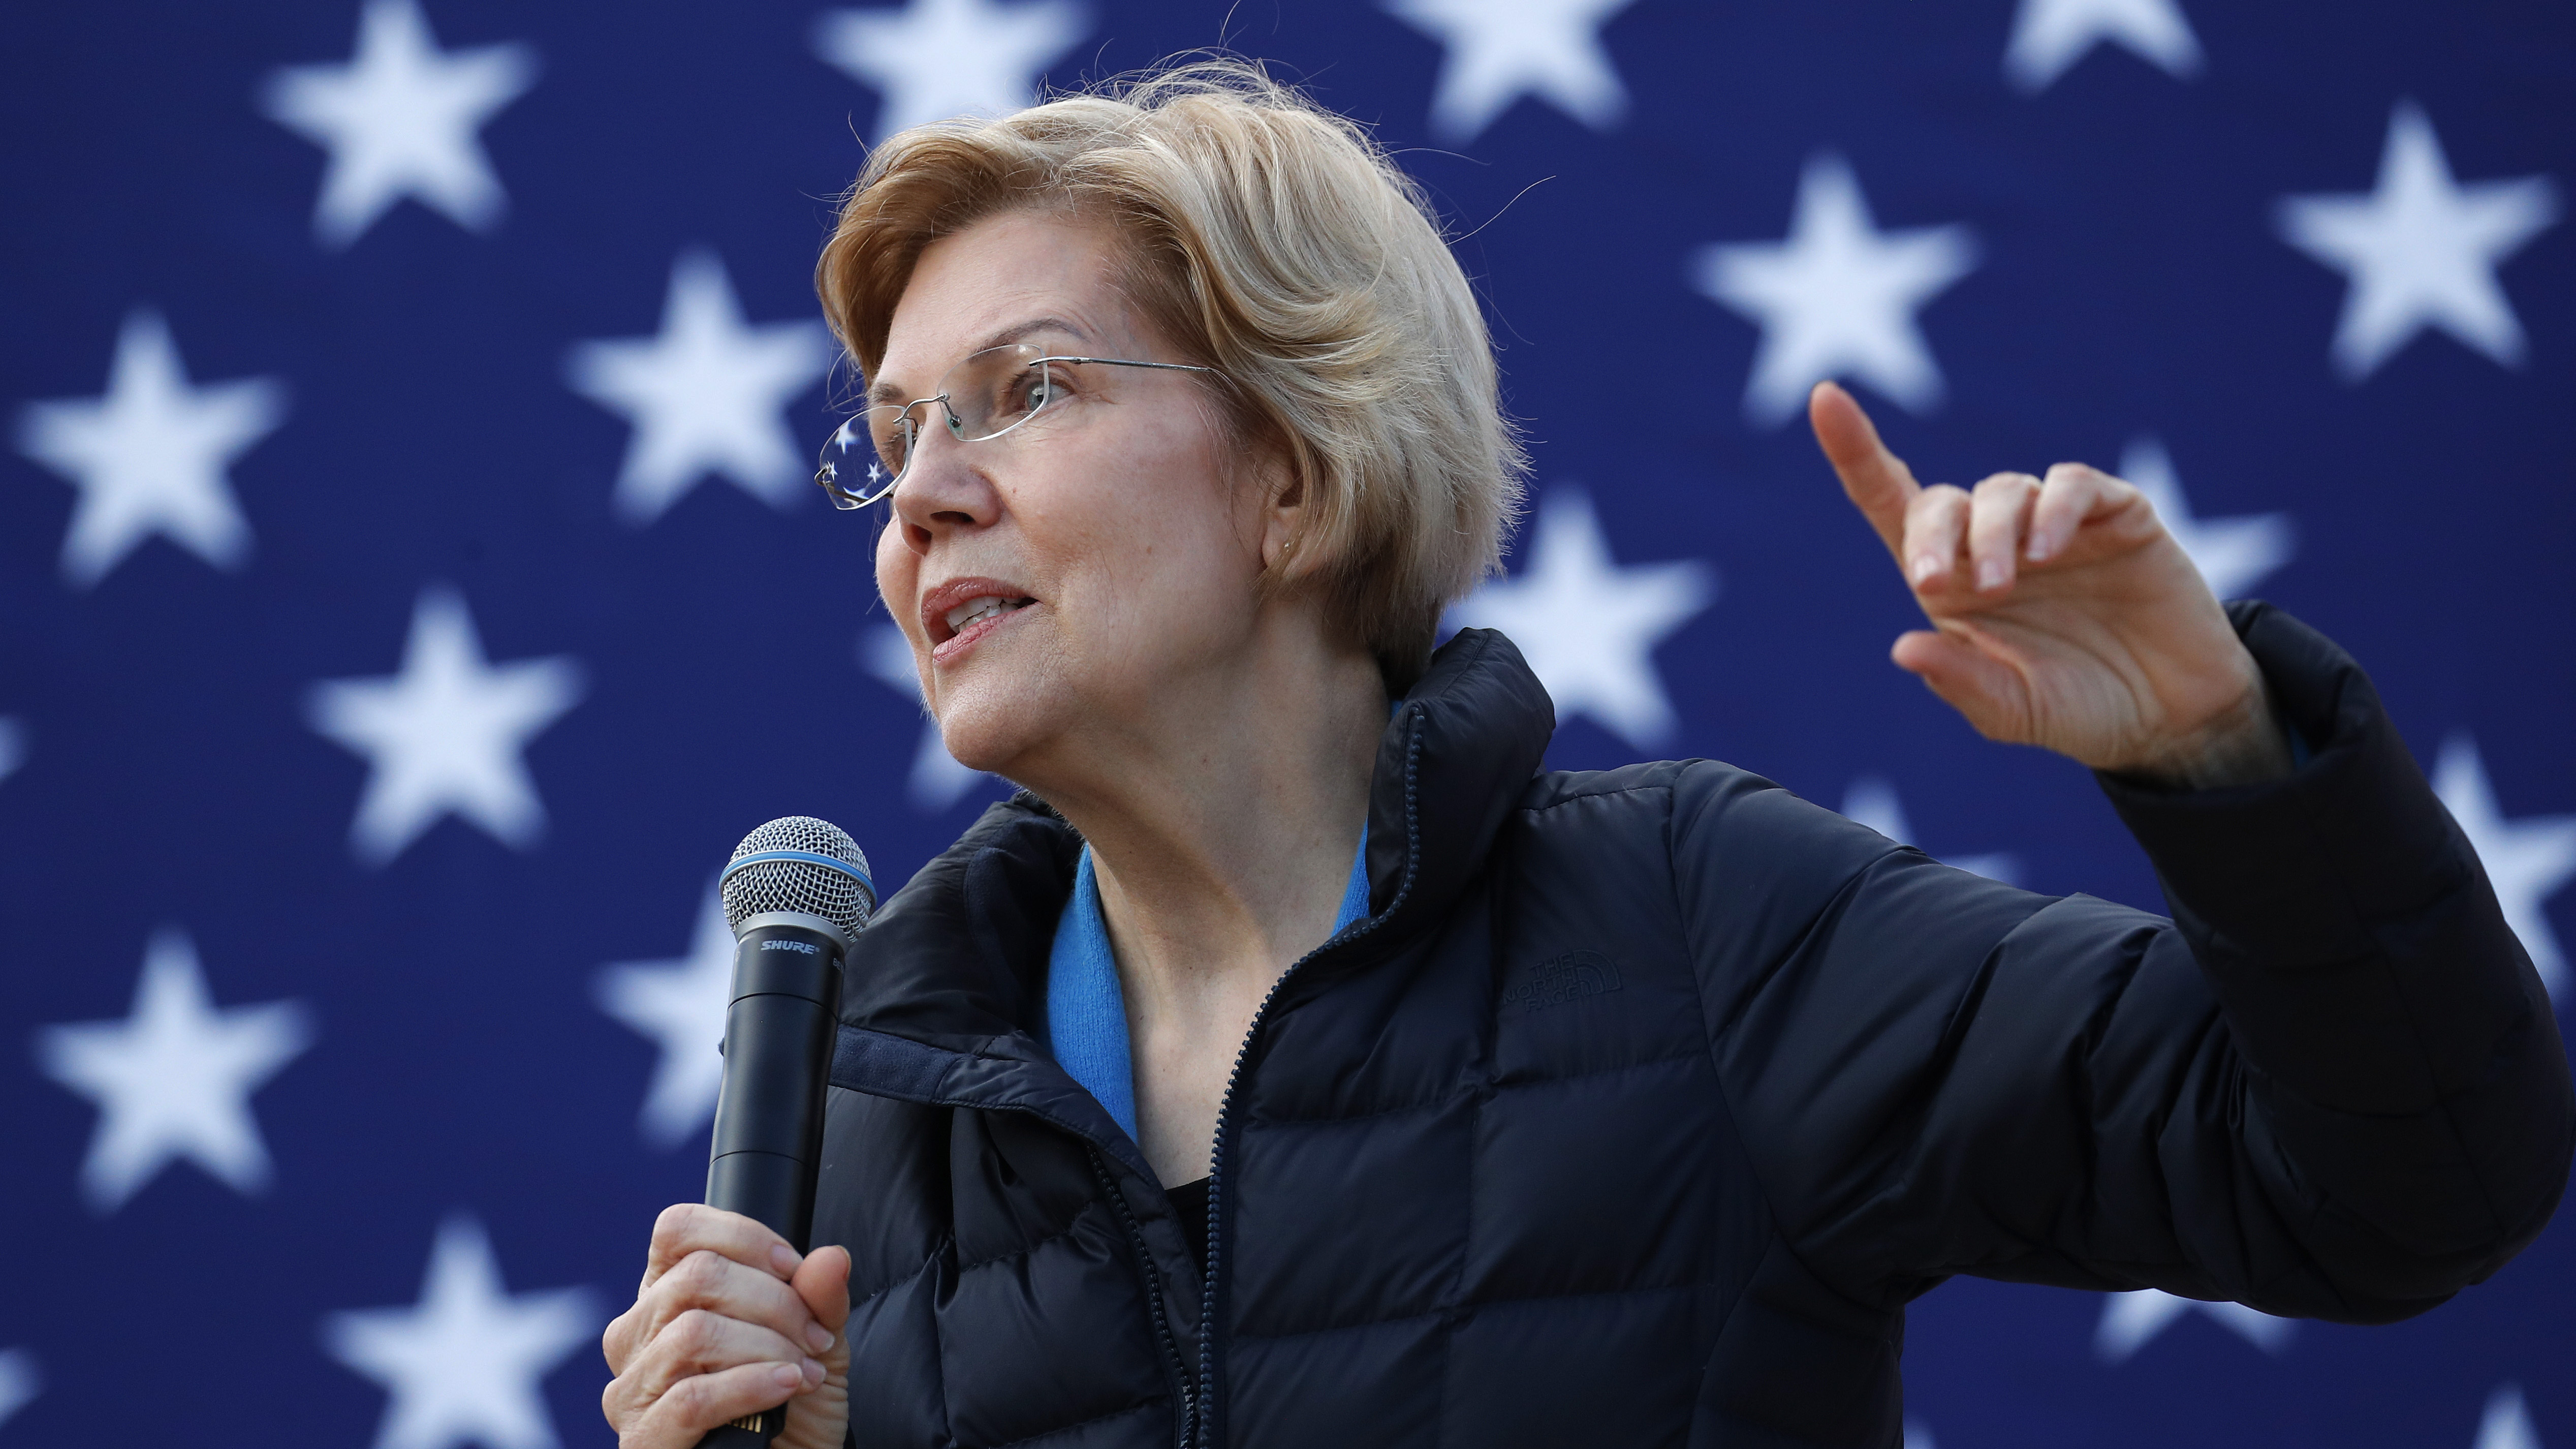 Presidential candidate Sen. Elizabeth Warren, D-Mass., at an organizing event in February 2019. Warren says she wants to get rid of the Electoral College, and vote for president using a national popular vote.